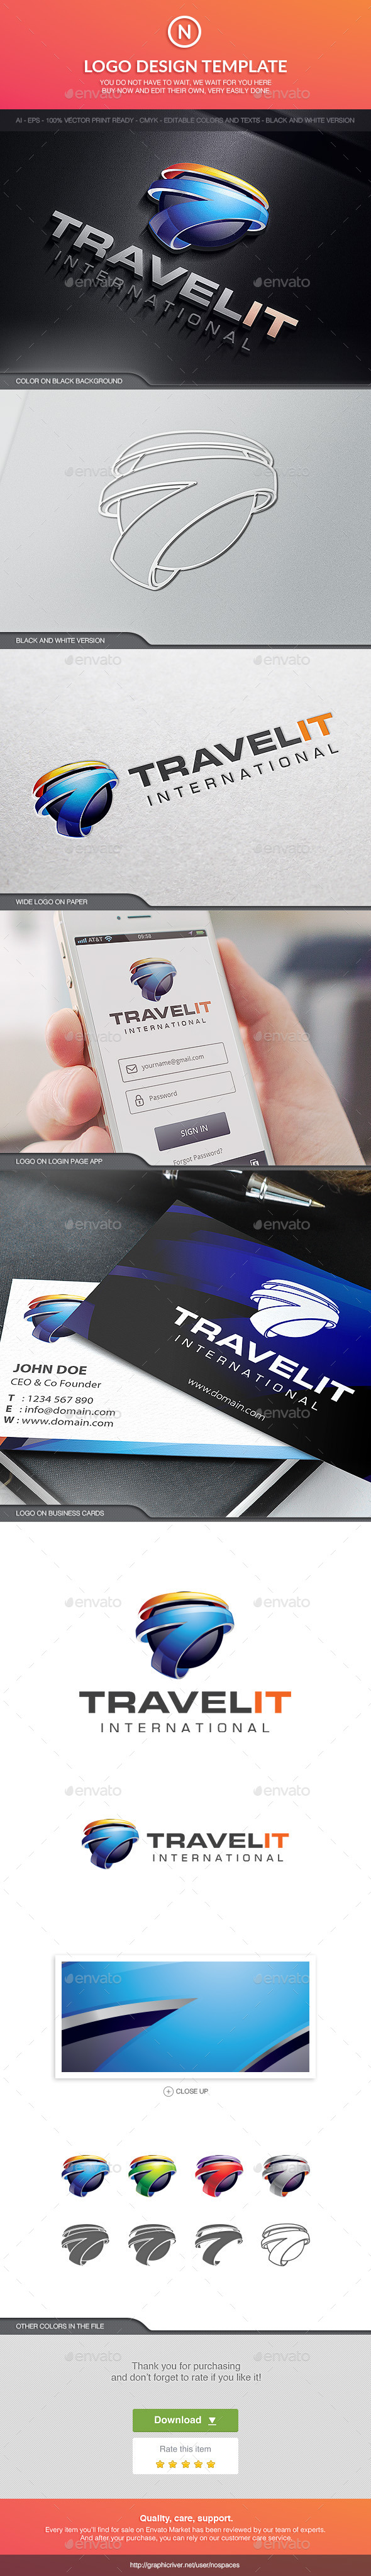 Travelit - 3d Abstract